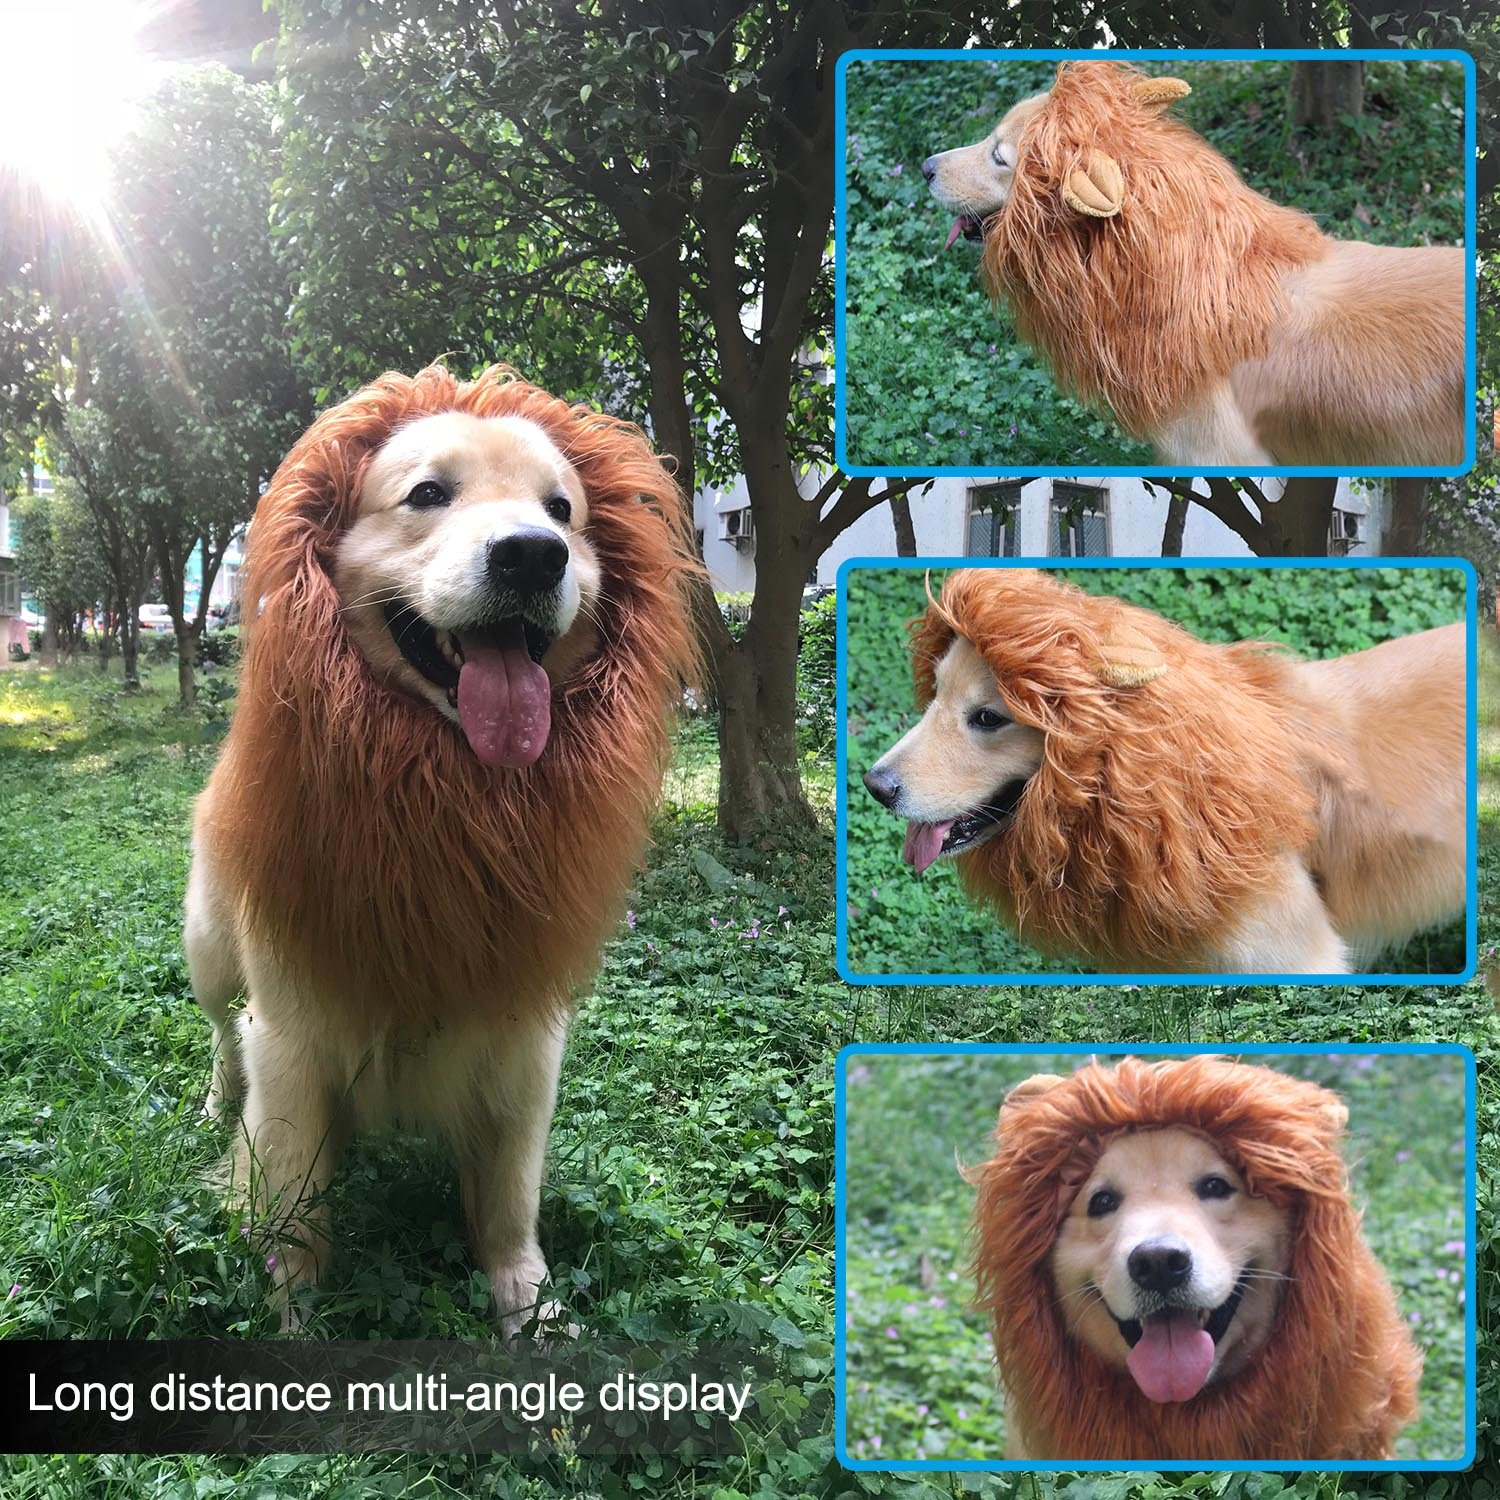 RWM ICCKER Lion Mane for Dog - Halloween Dog Costume Large Size - Hilarious Realistic & Funny Majestic Looking Hoods with Ear and Tails - Great Pet Gift Choice for Christmas,Pet Birthday Party by RWM (Image #8)